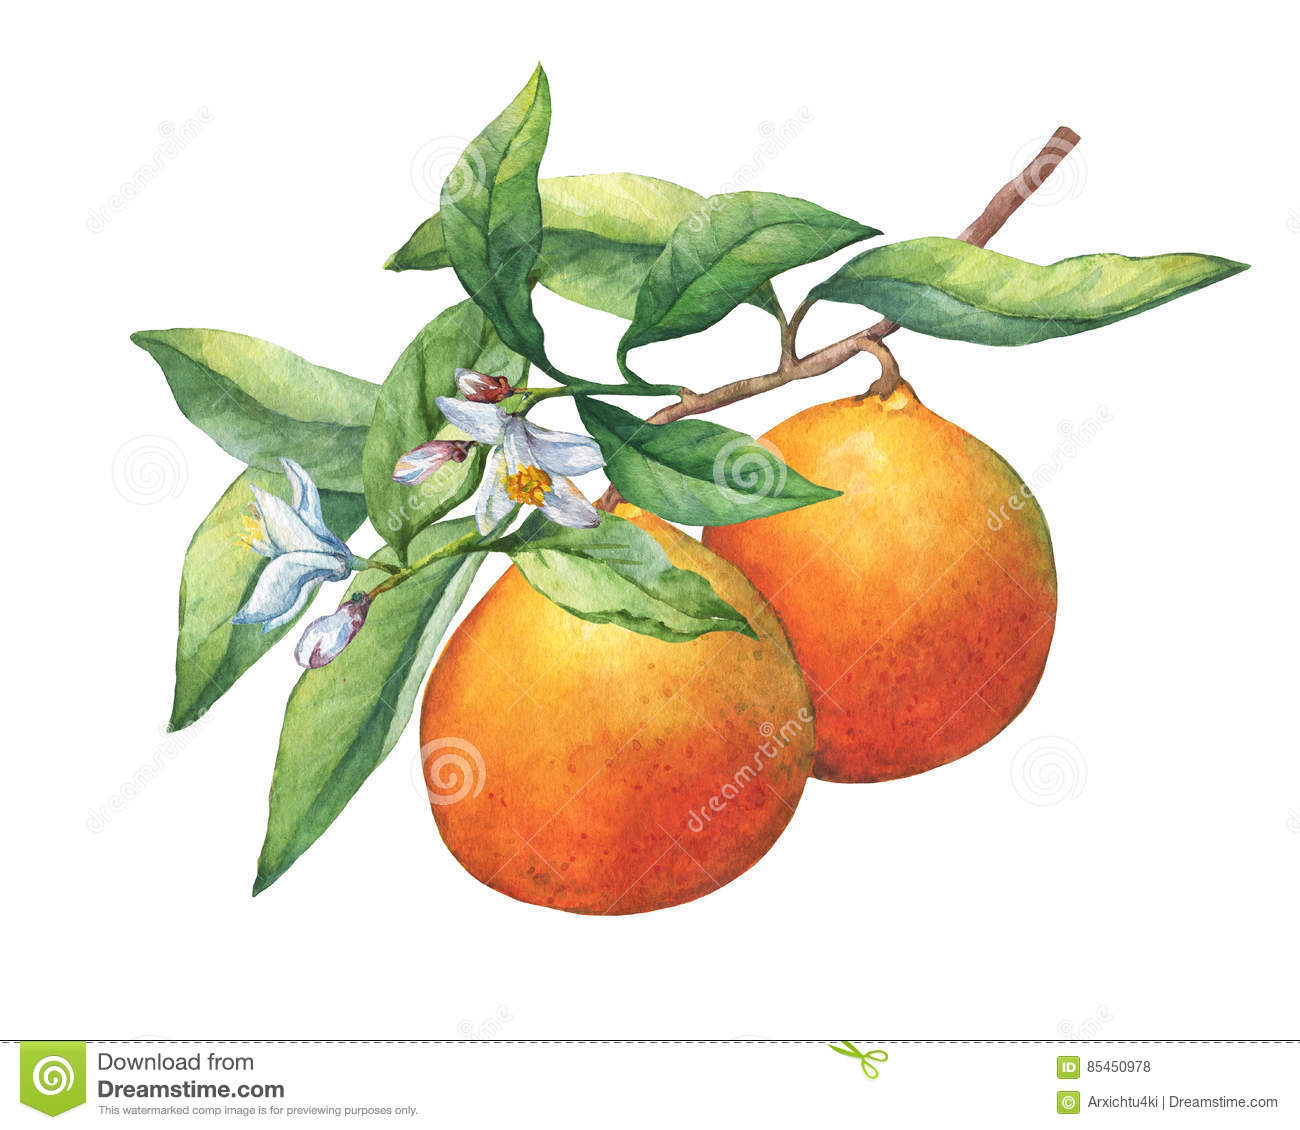 Fresh citrus fruit oranges on a branch with fruits, green leaves, buds and flowers.